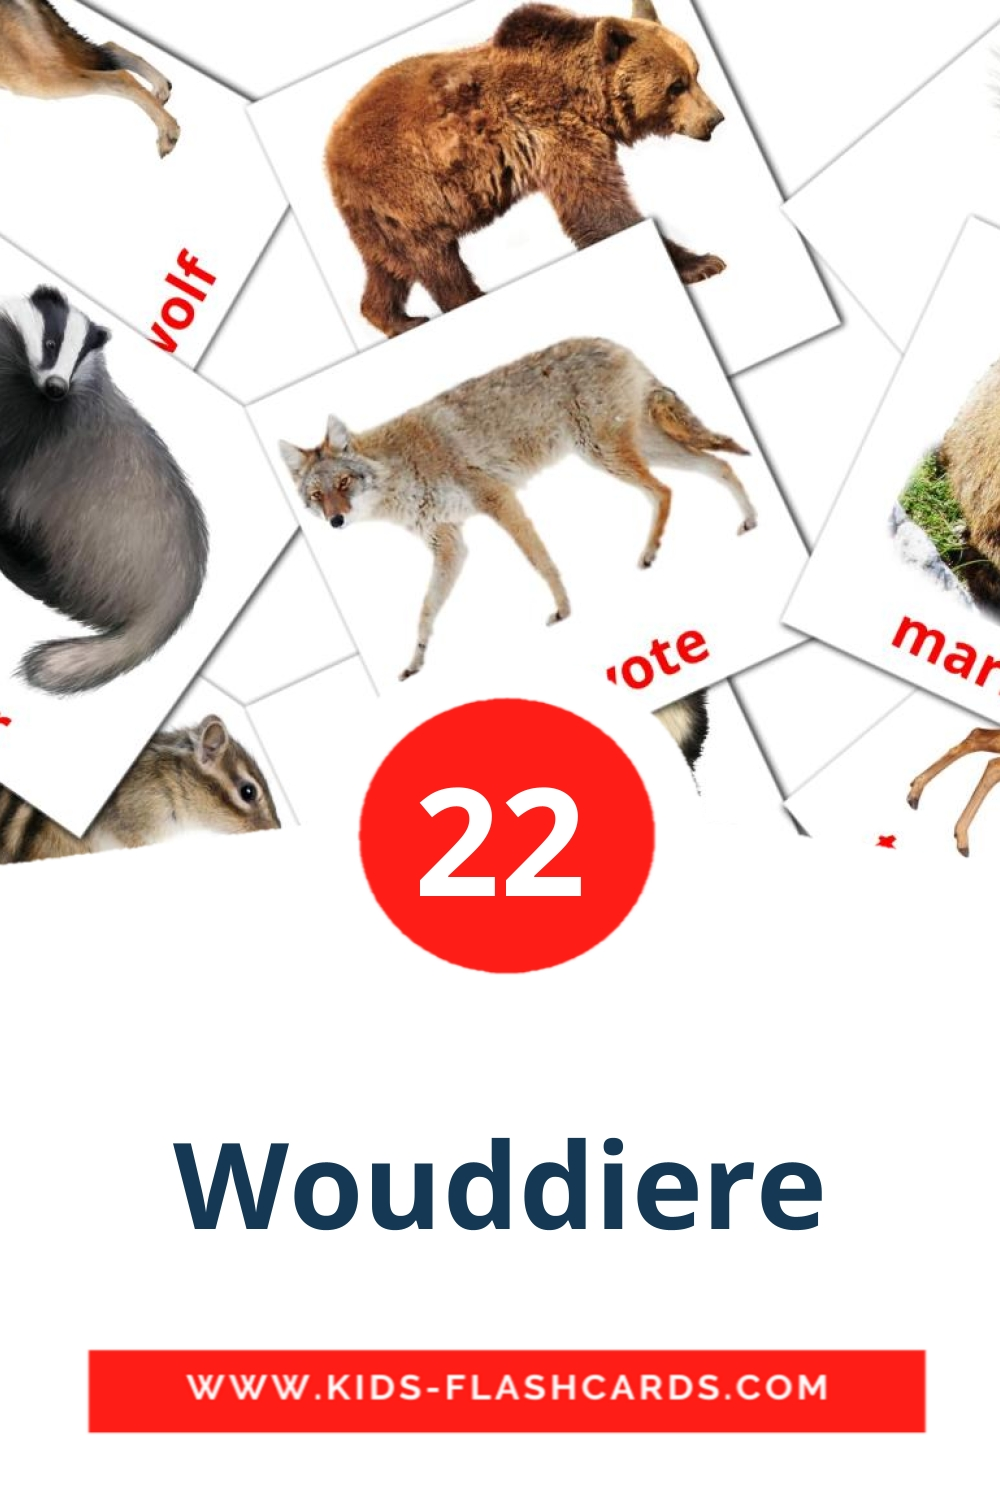 22 Wouddiere Picture Cards for Kindergarden in afrikaans